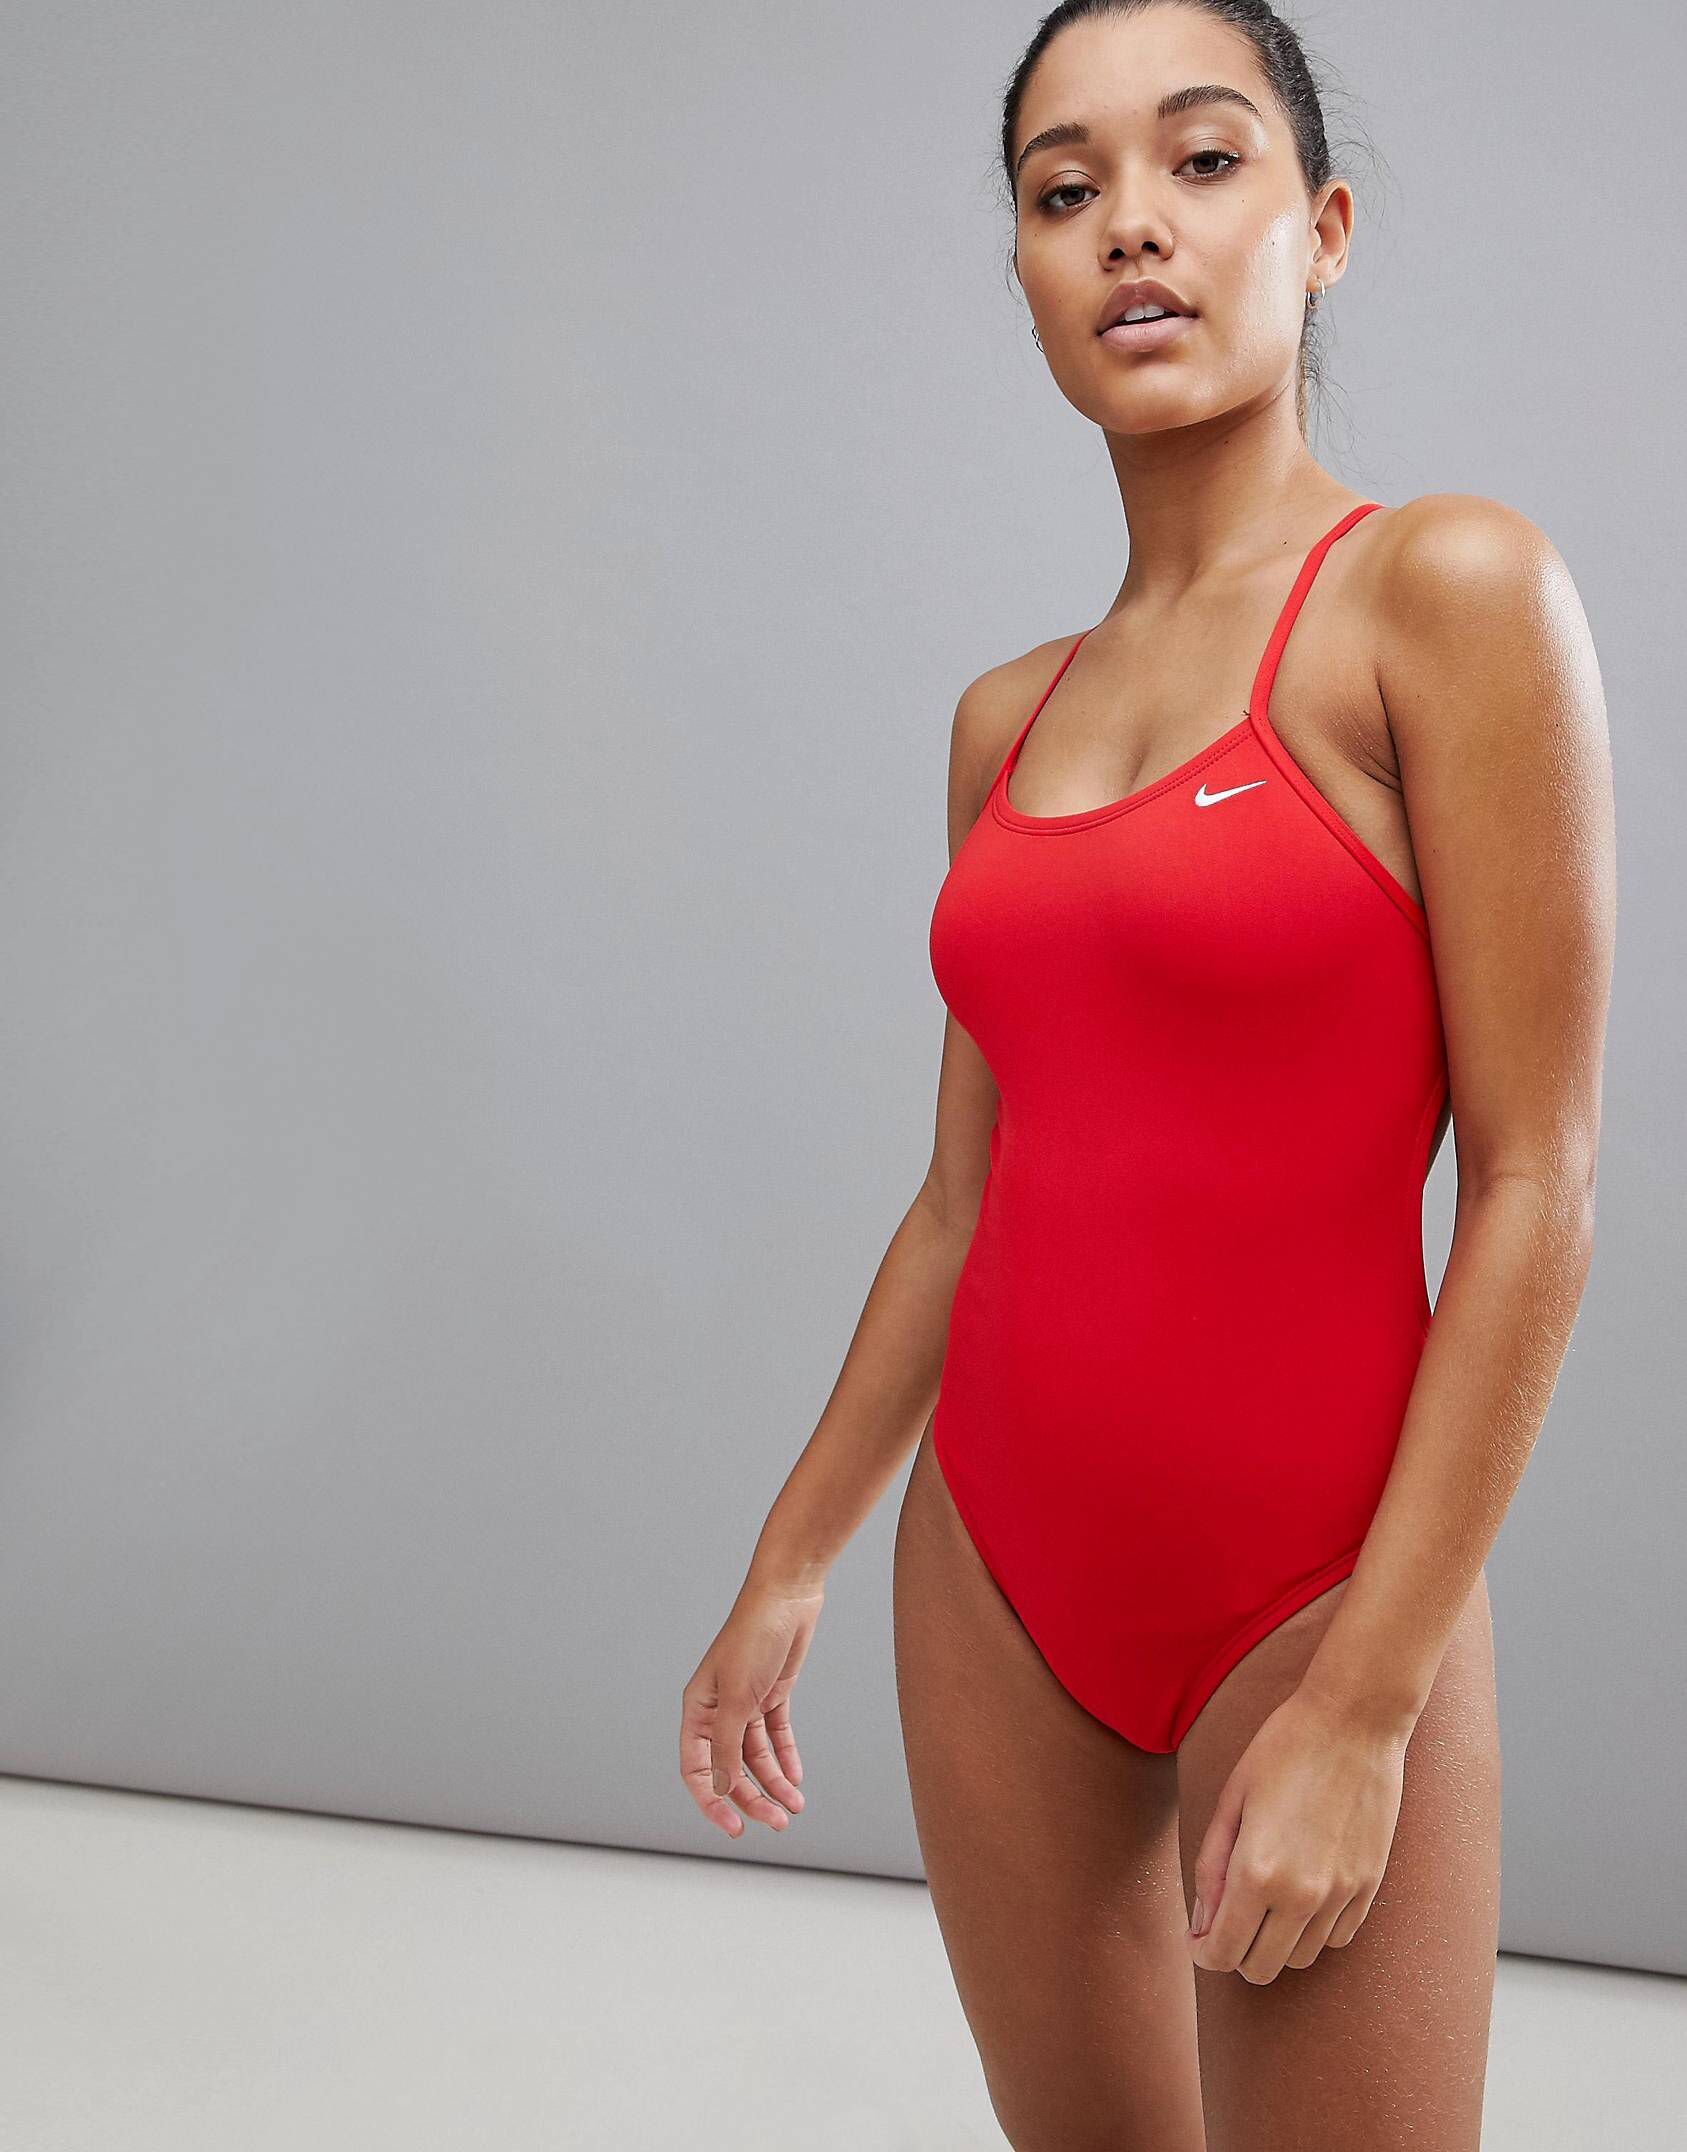 72c186aadac Nike cut-out swimsuit in red in 2019 | Nike!! | Nike one piece ...